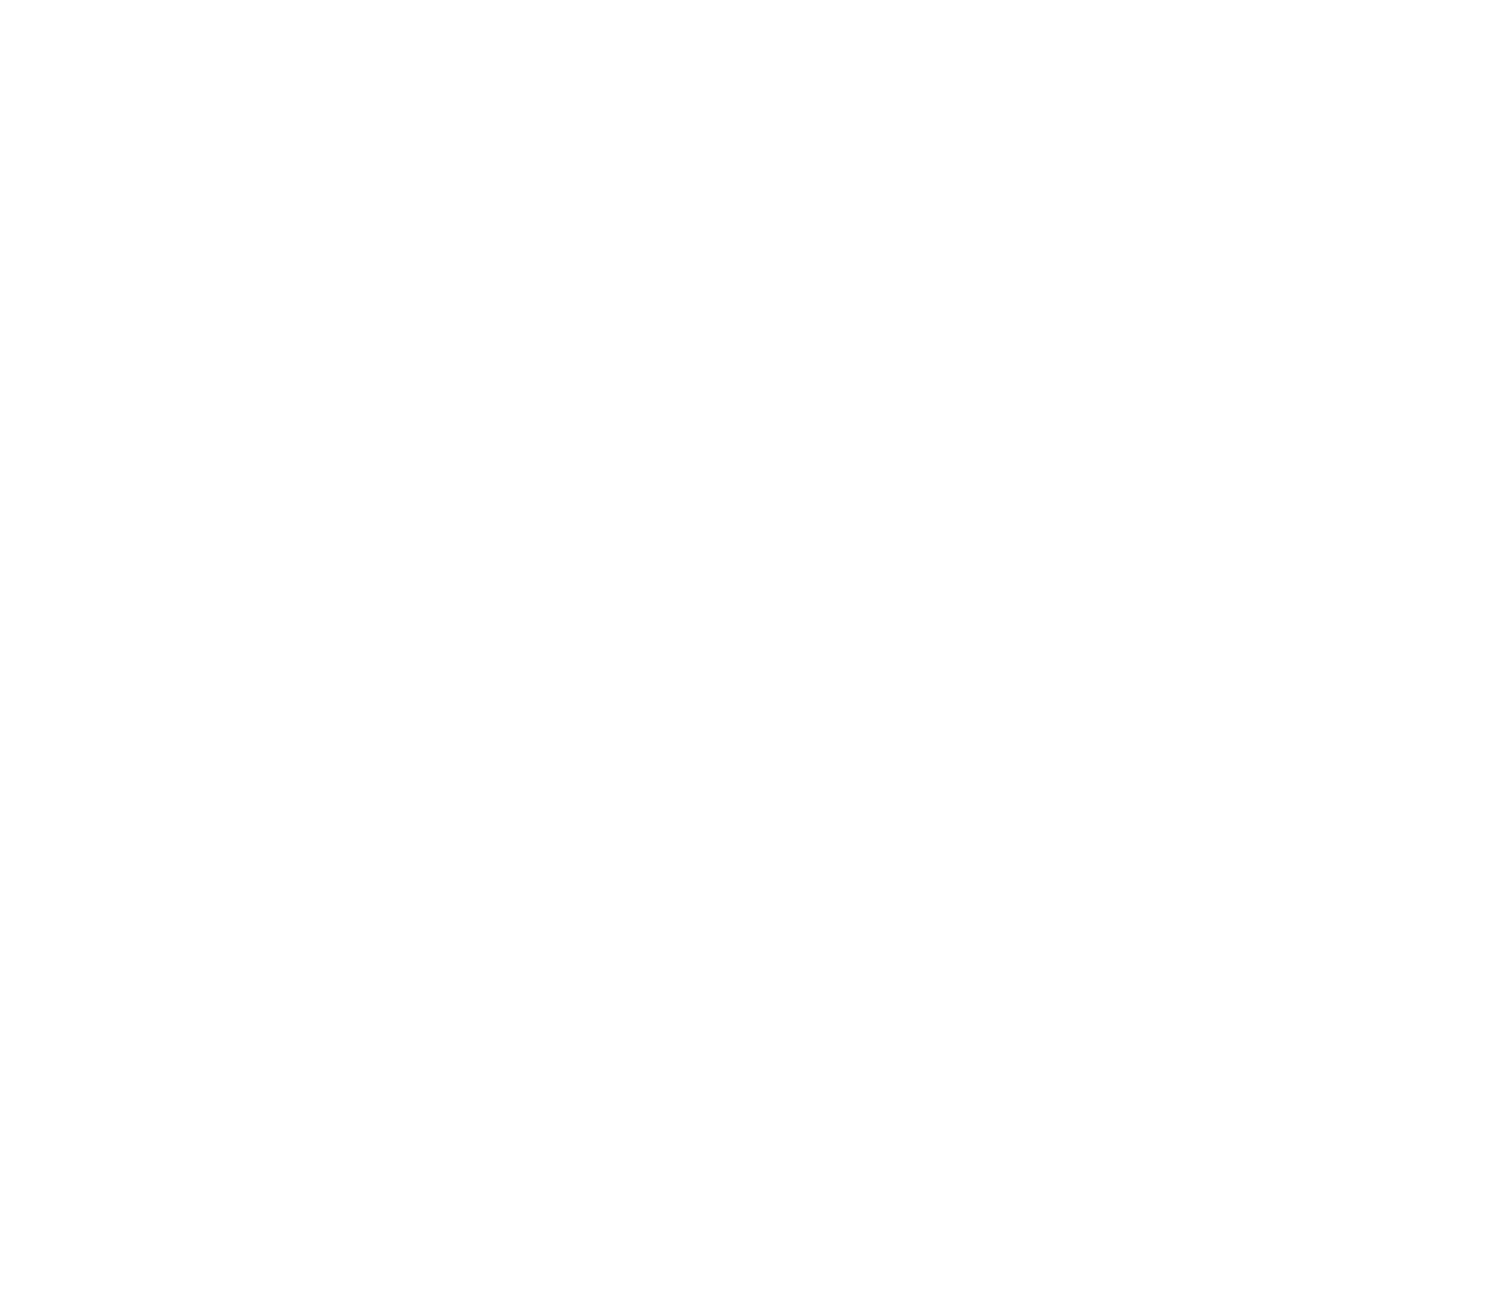 The Cazettes